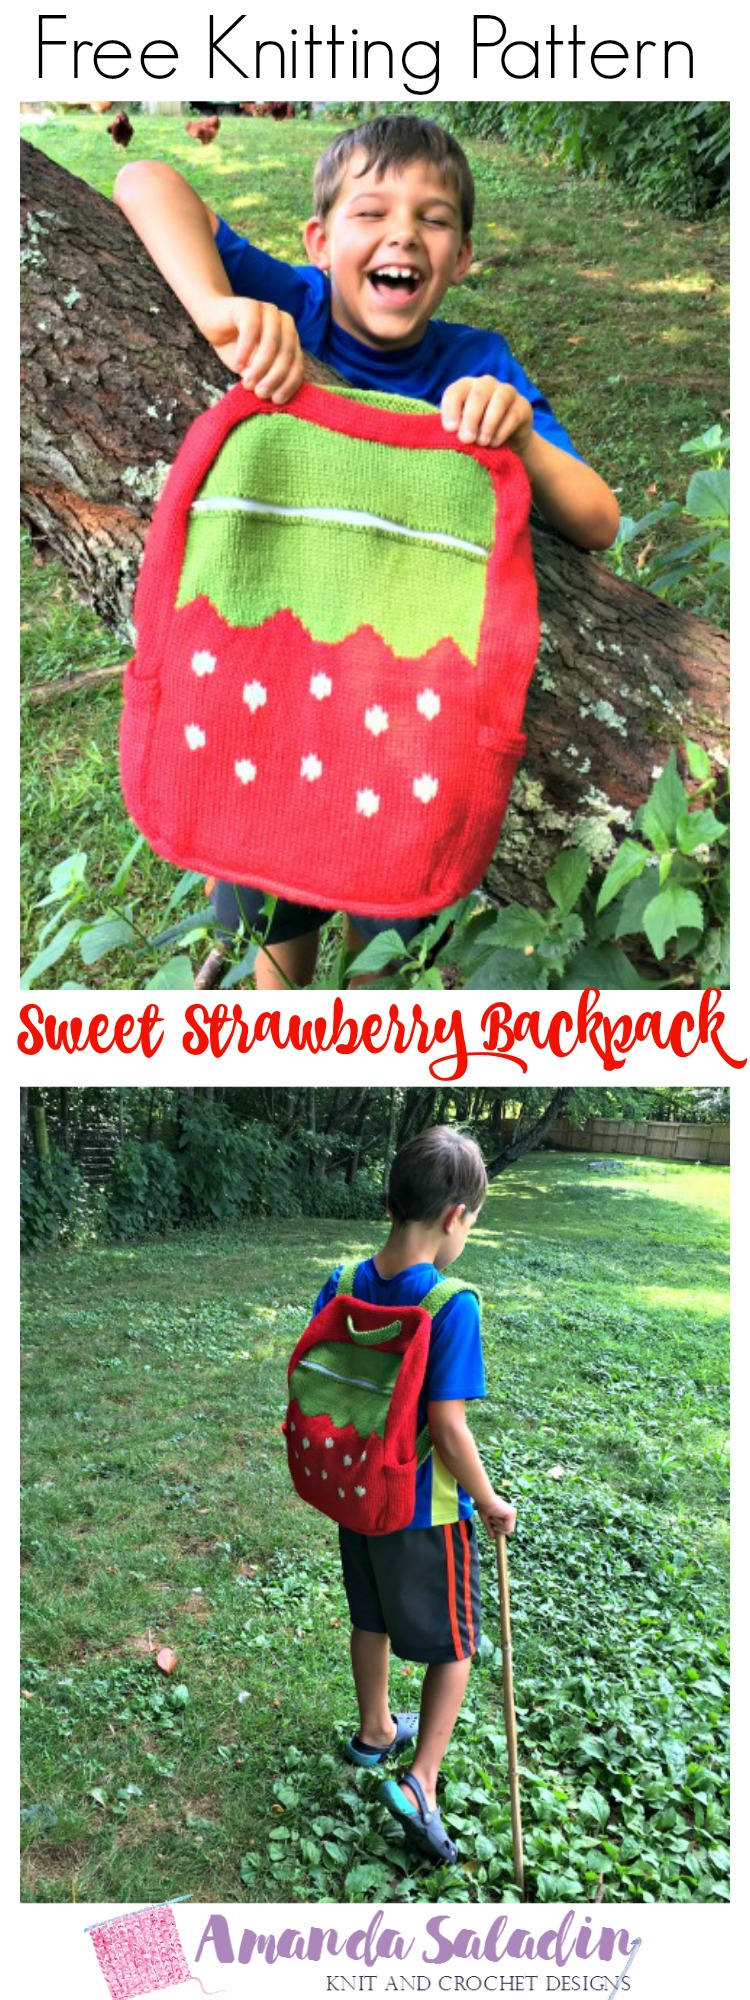 Free Knitting Pattern - Sweet Strawberry Backpack